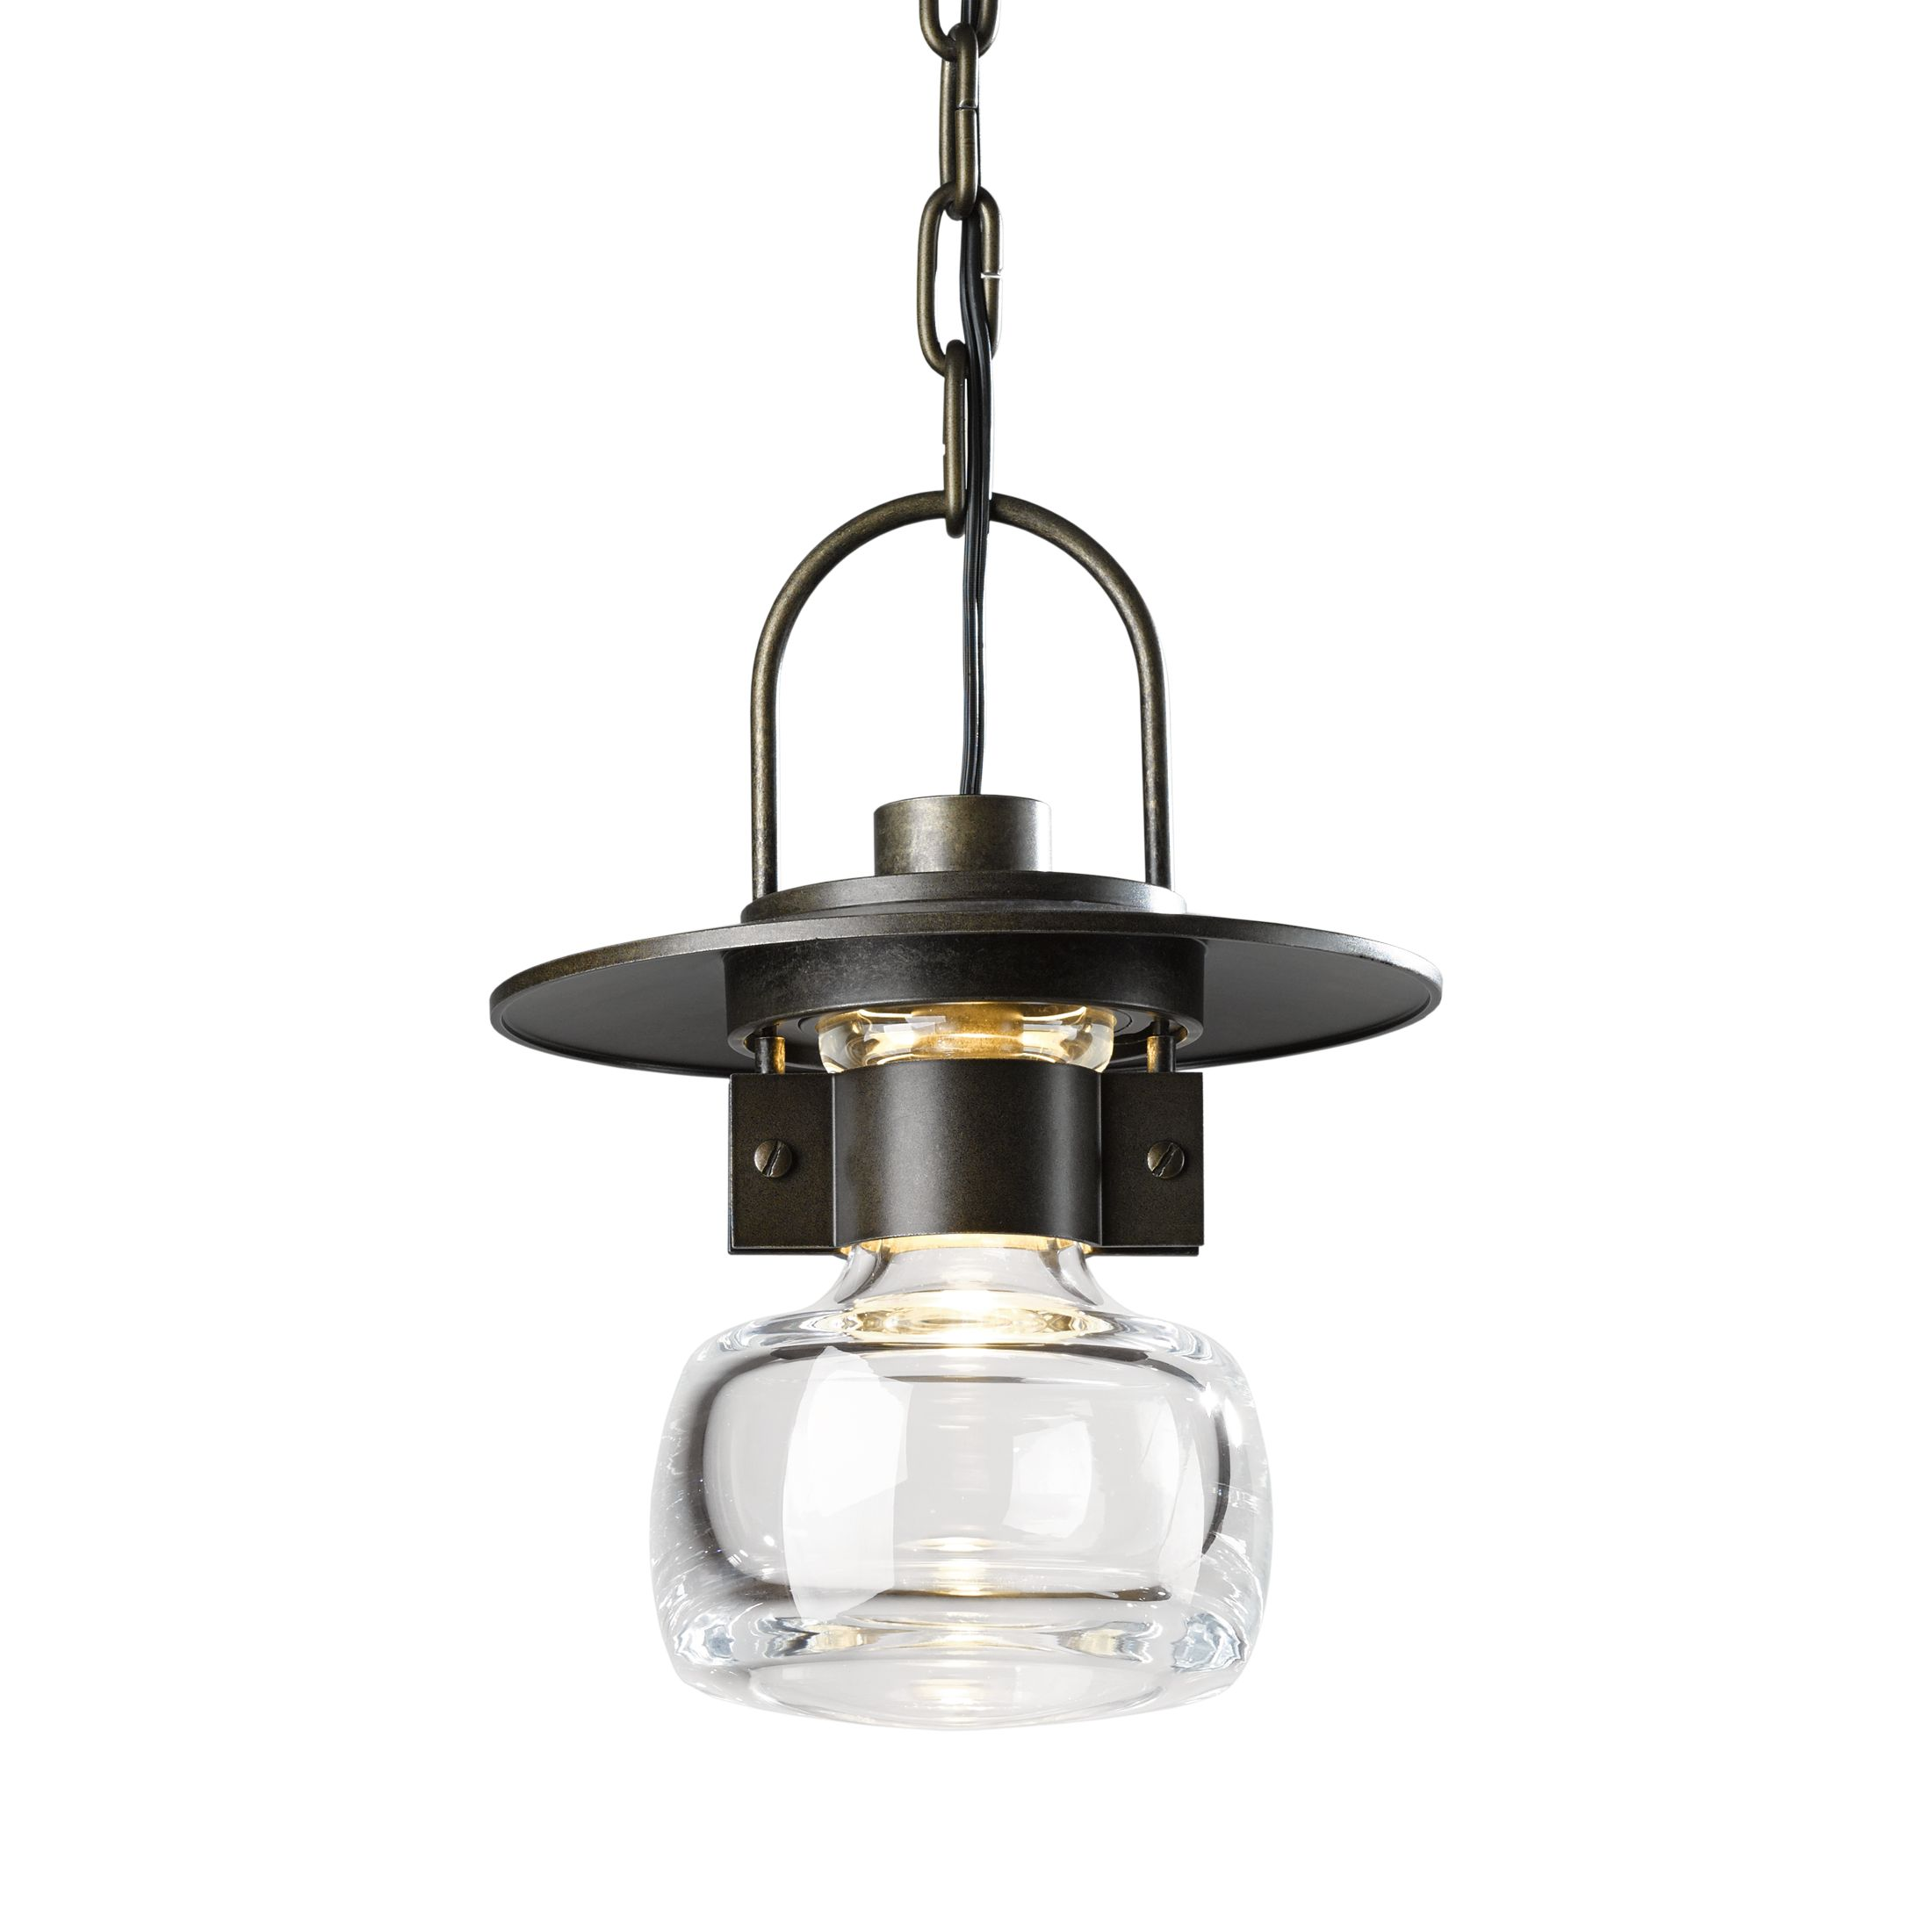 Thumbnail for Mason Outdoor Ceiling Fixture